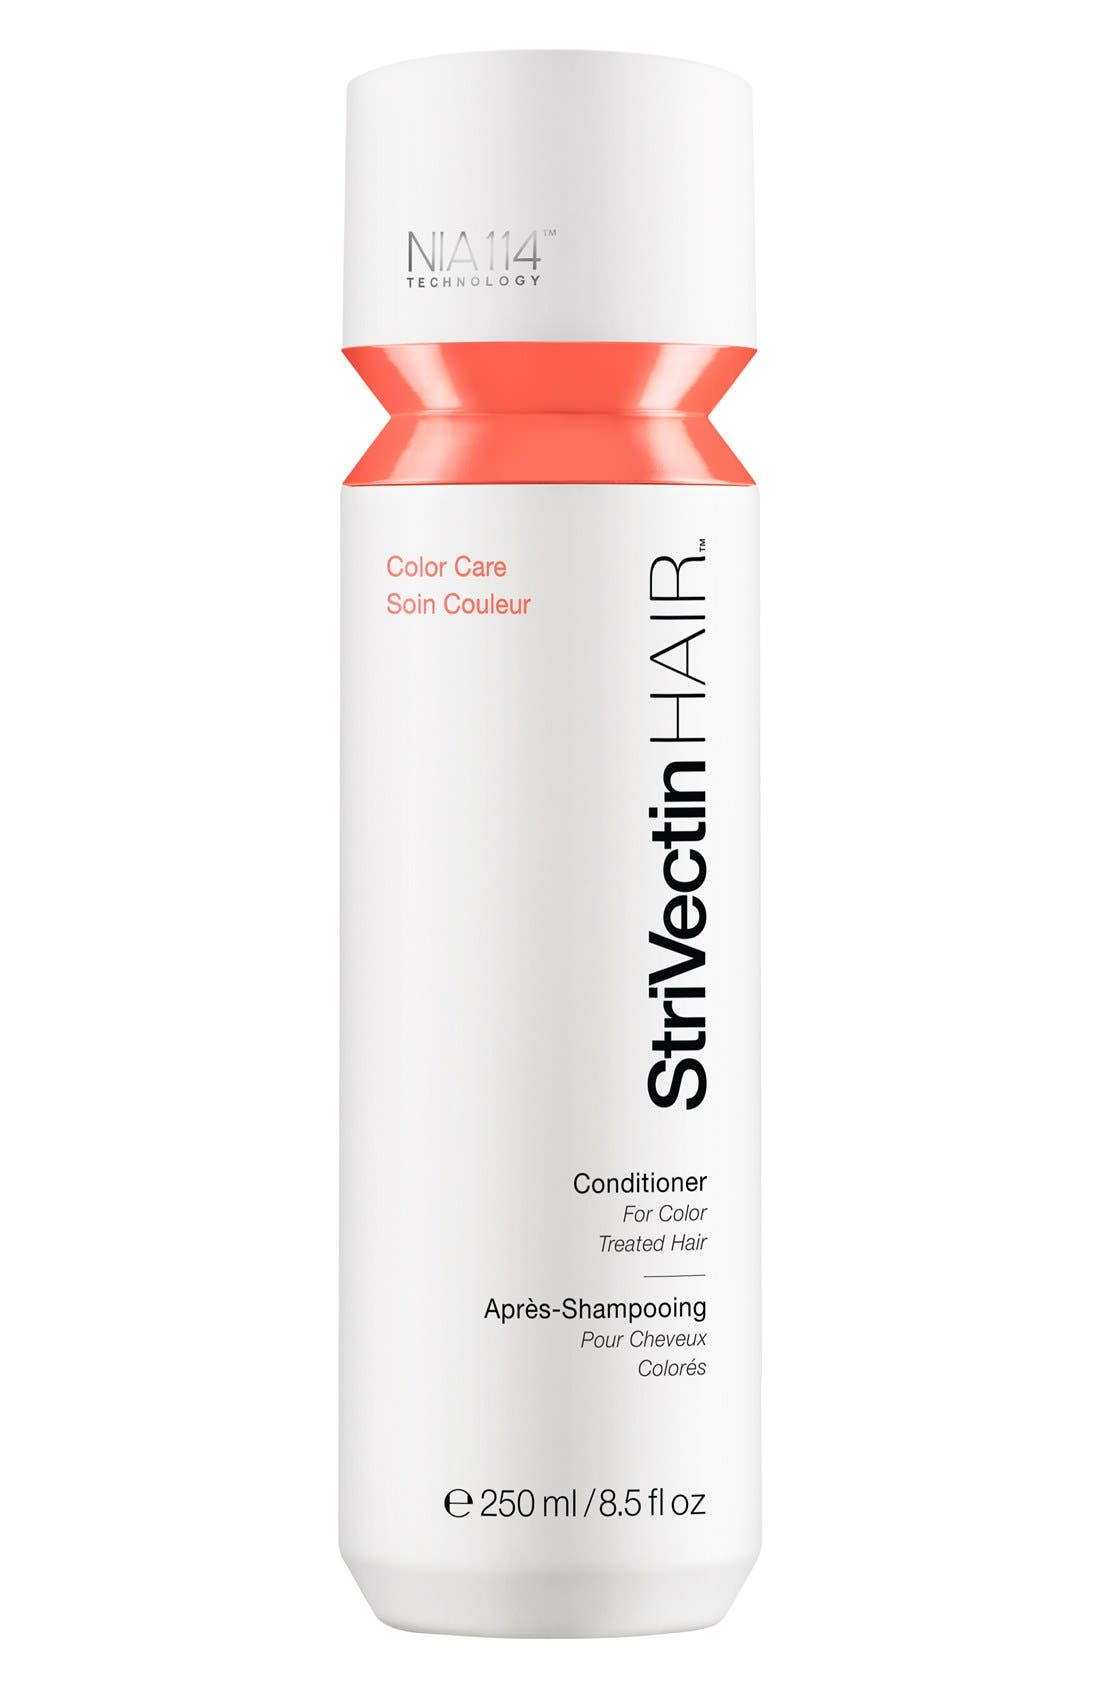 StriVectinHAIR<sup>™</sup> 'Color Care' Conditioner for Color Treated Hair,                             Alternate thumbnail 2, color,                             000